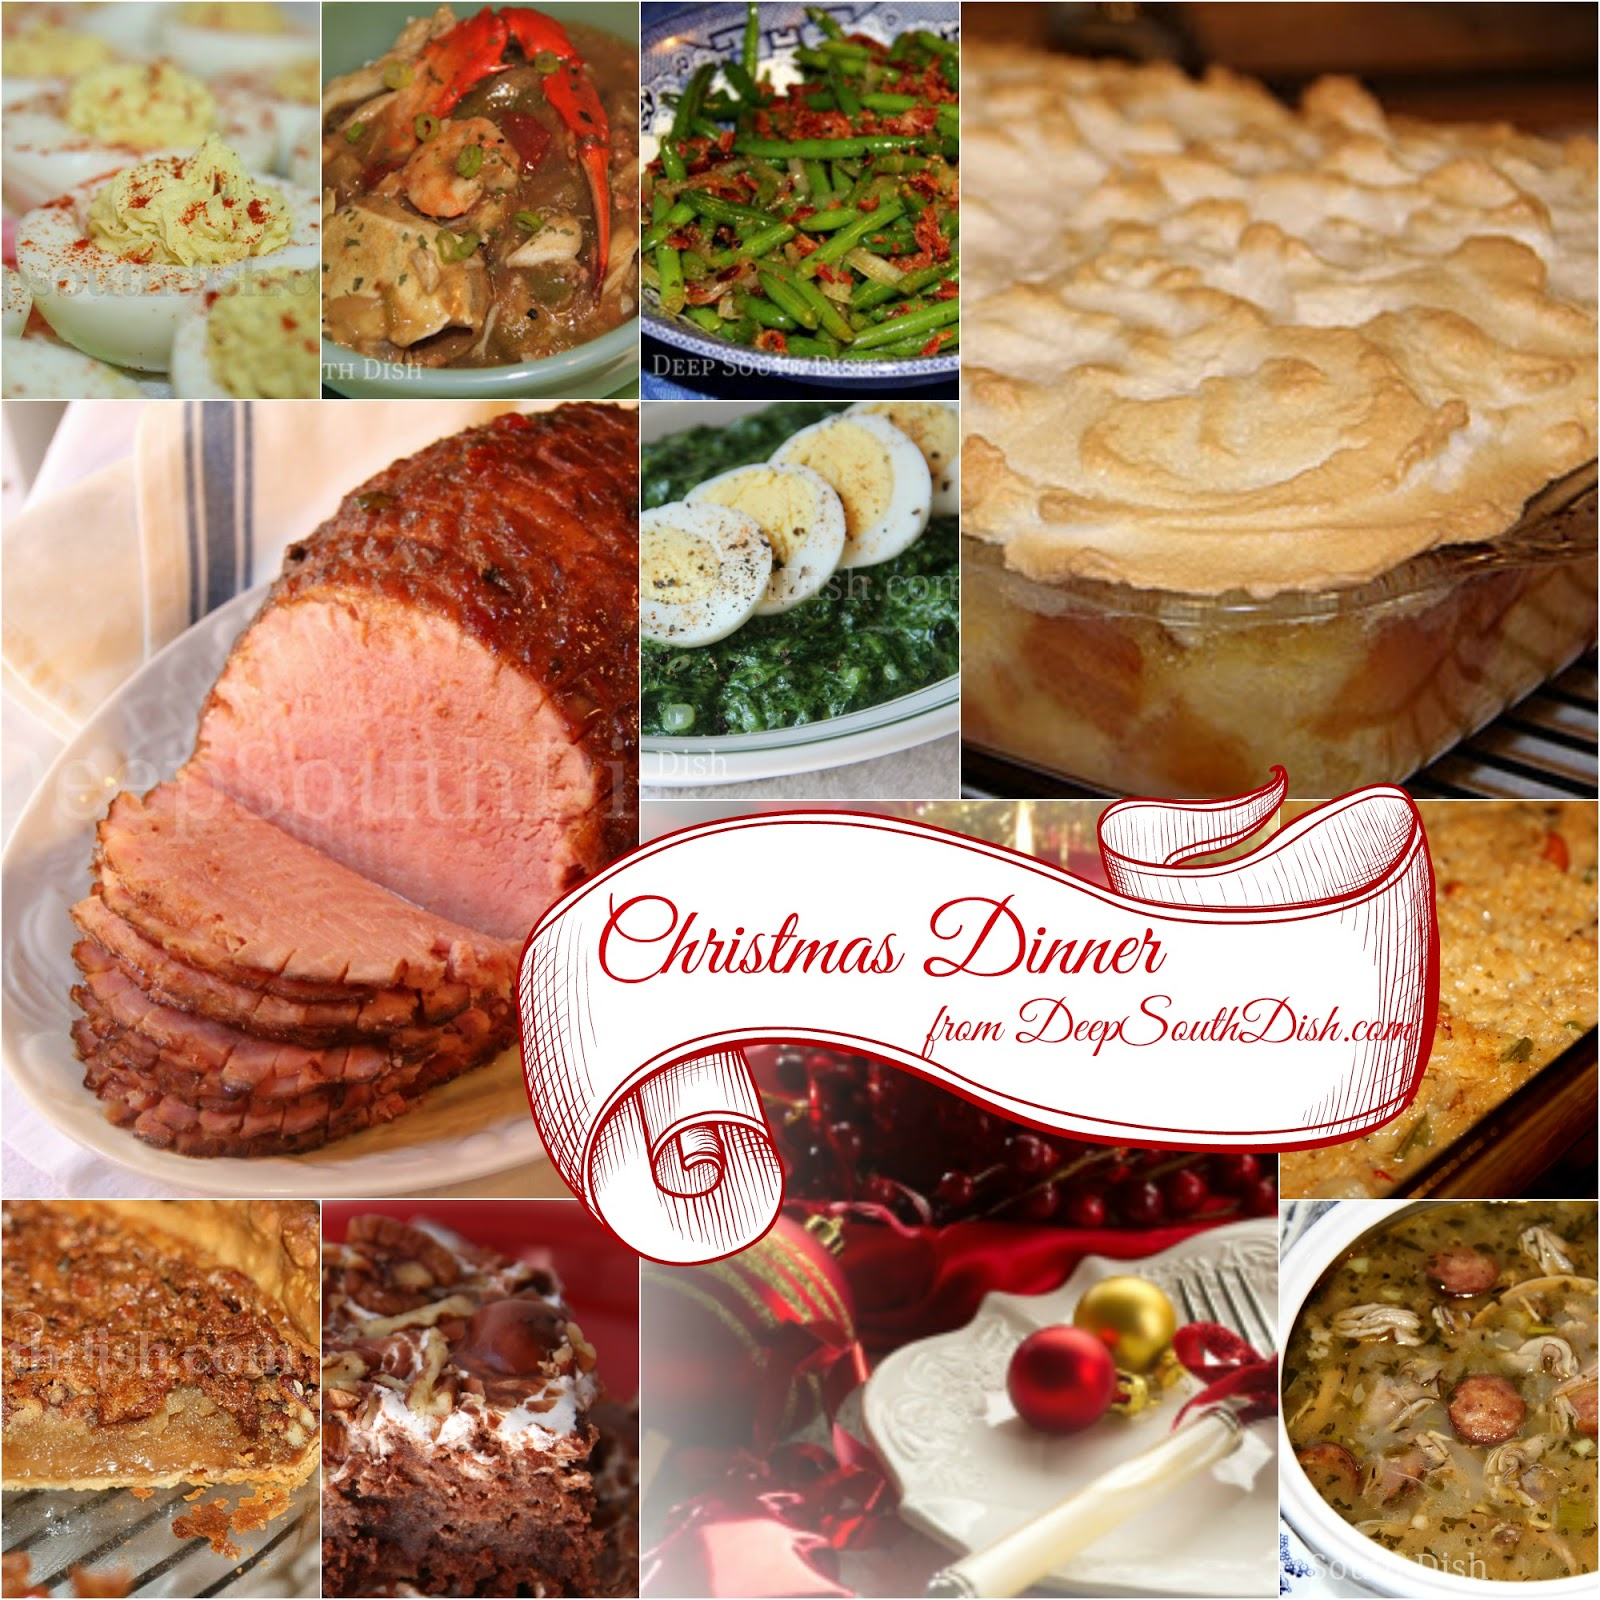 Deep south dish southern christmas dinner menu and recipe ideas southern christmas dinner menu and recipe ideas forumfinder Choice Image